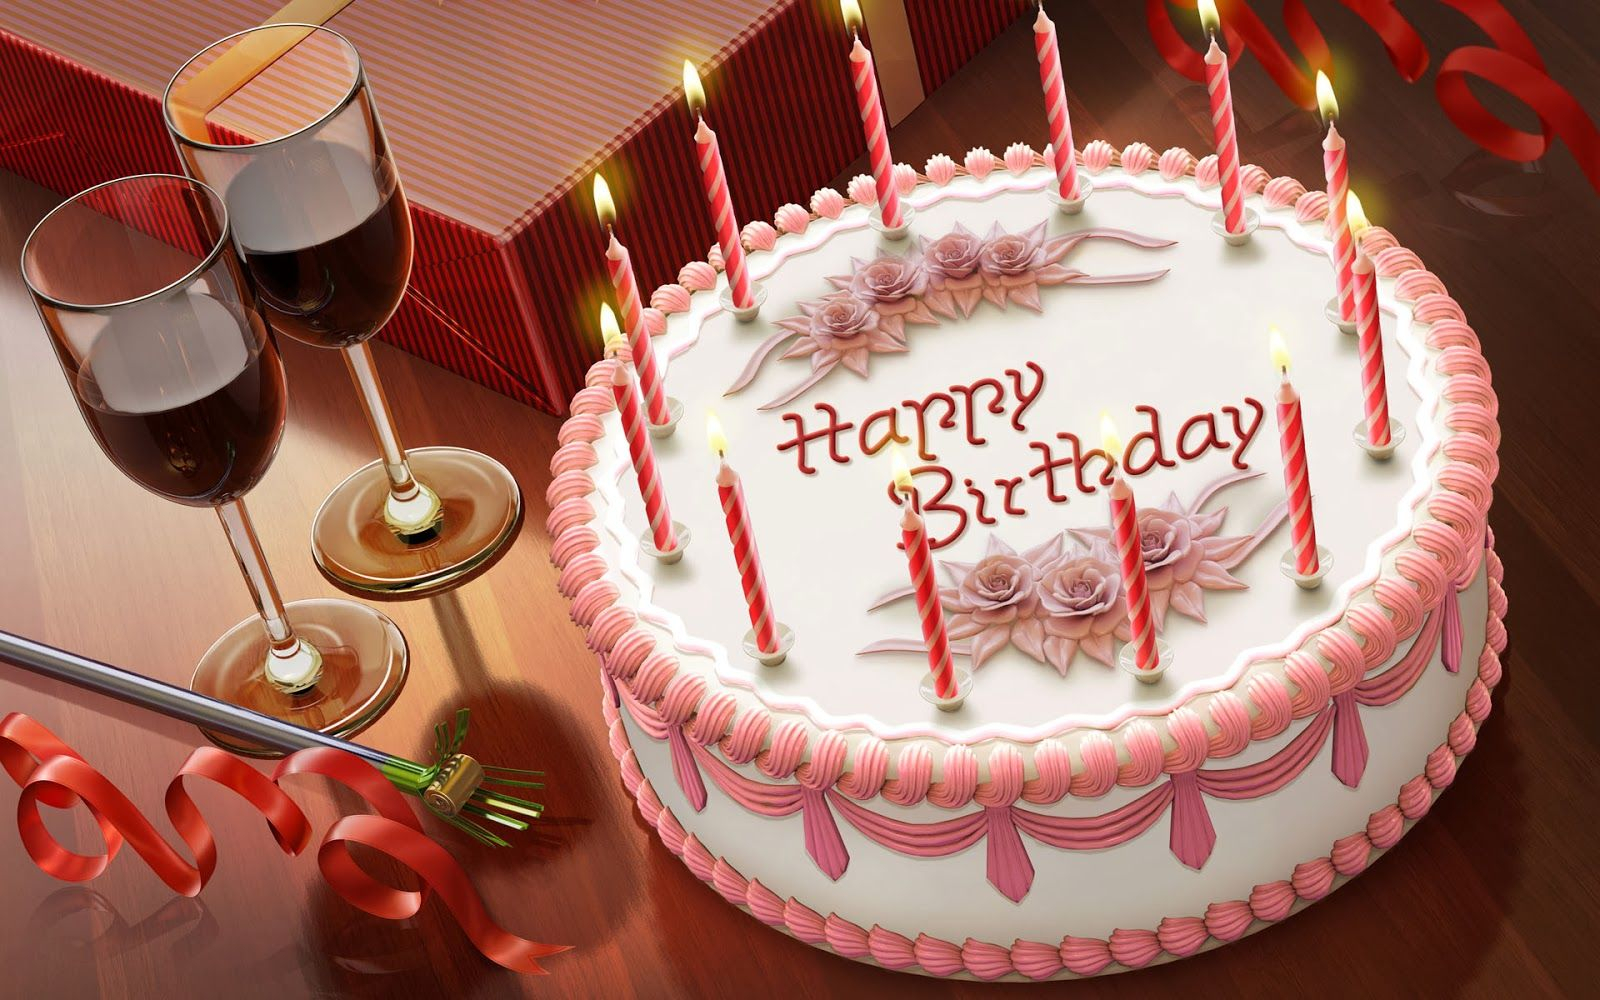 Birthday Cake Images Free Download Images For Happy Birthday Cakes Hd Free Download Loveable Cakes